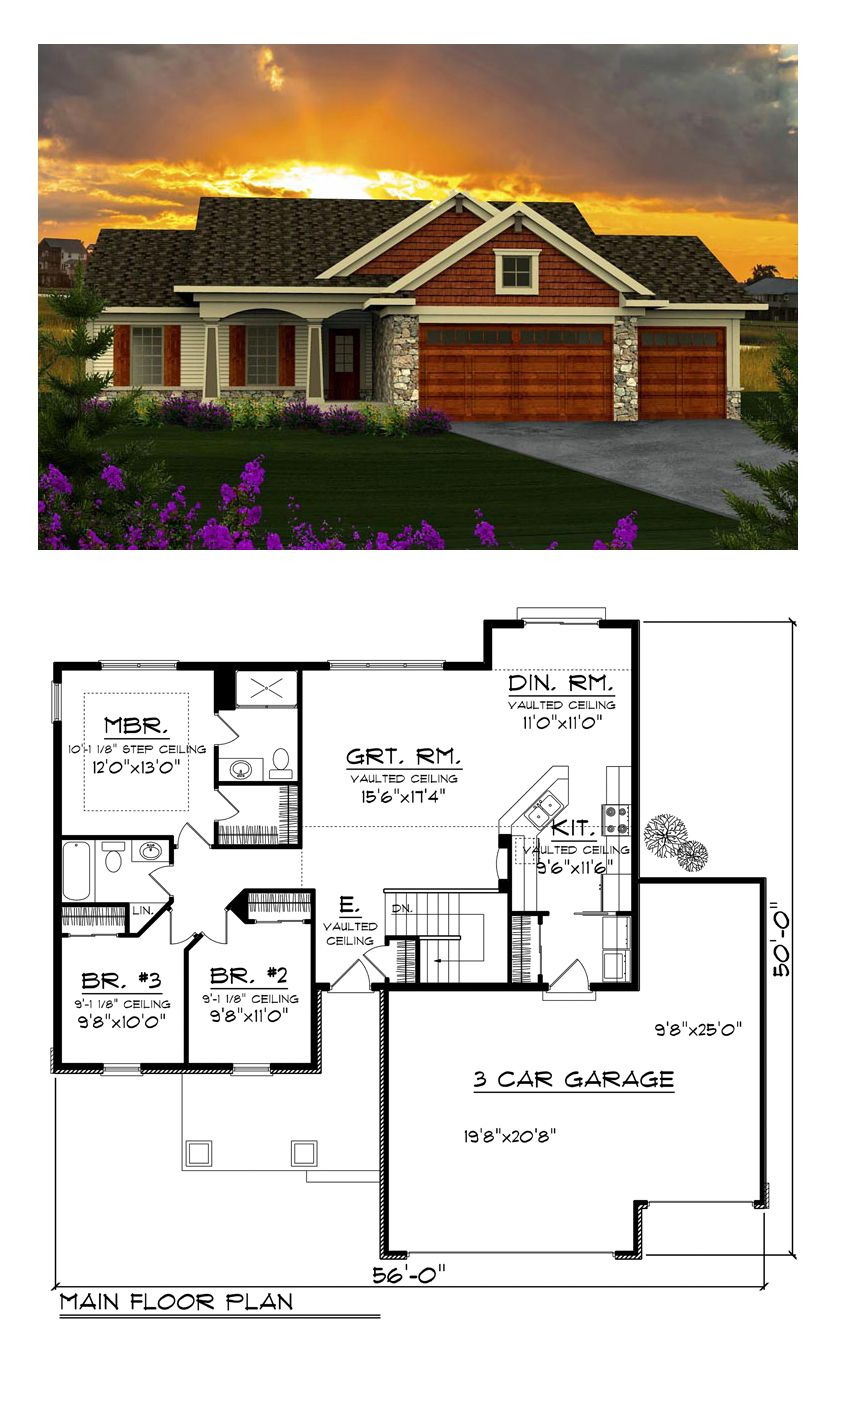 Small Rambler House Plans Elegant Ranch Style House Plan with 3 Bed 2 Bath 3 Car